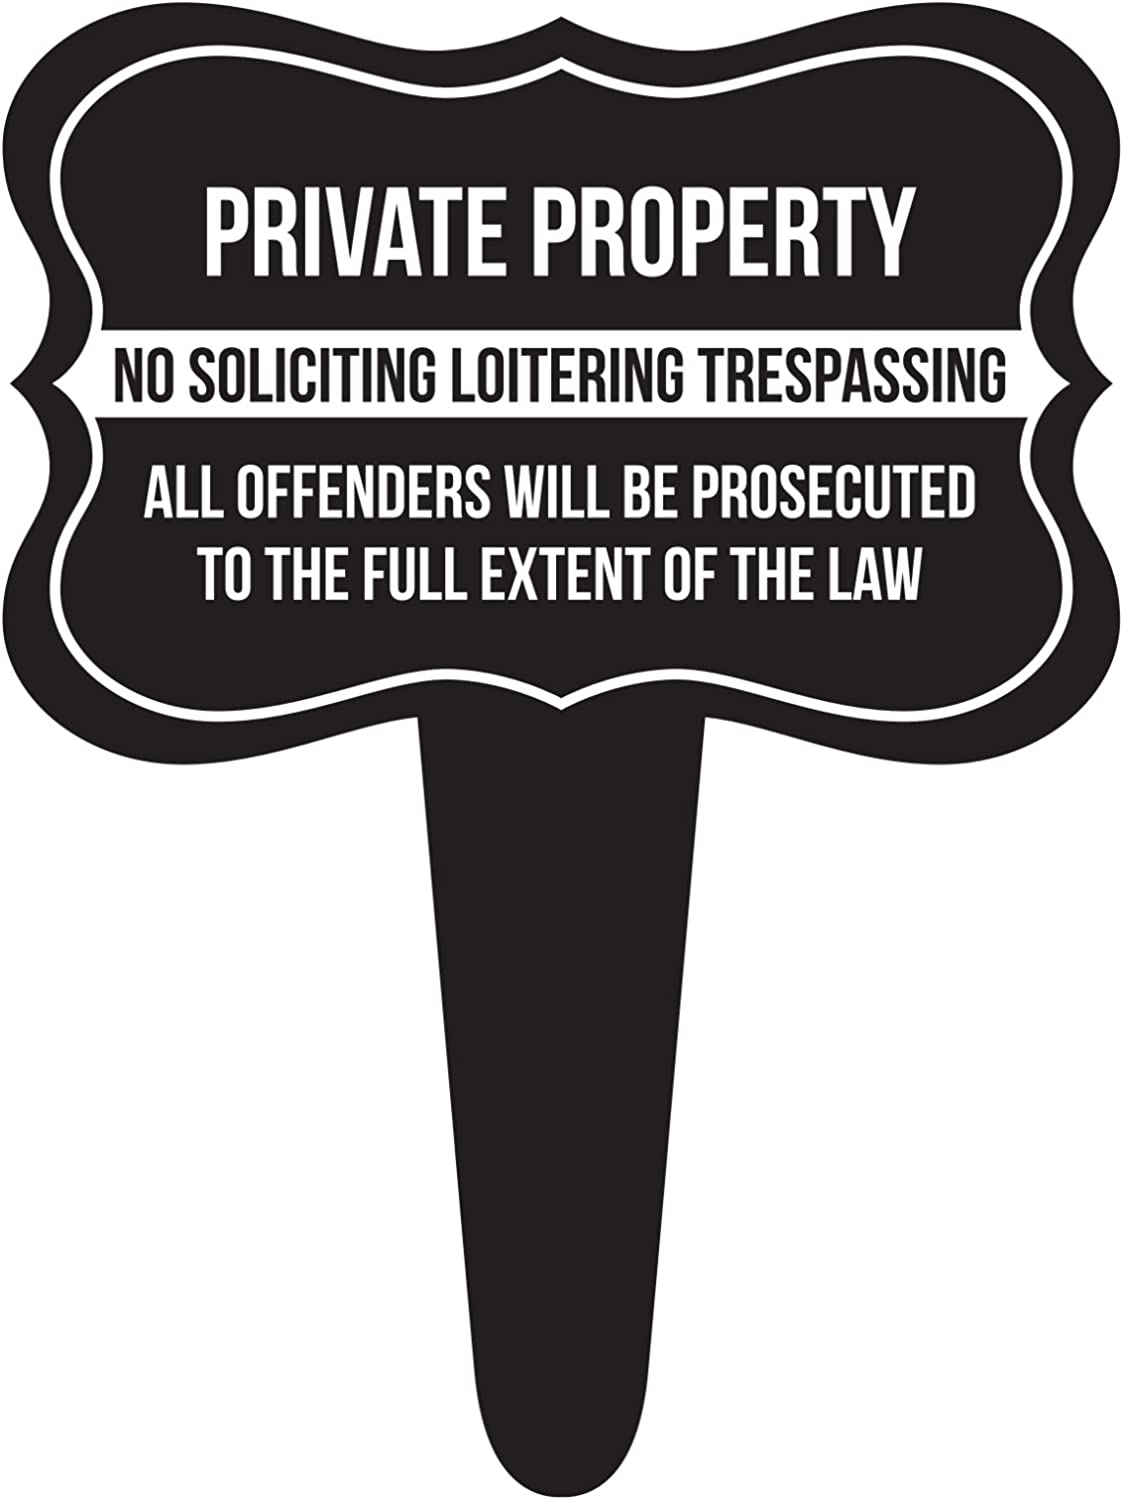 iCandy Combat Private Property No Soliciting Loitering Trespassing Home Yard Lawn Sign, Black, 12x16, Single